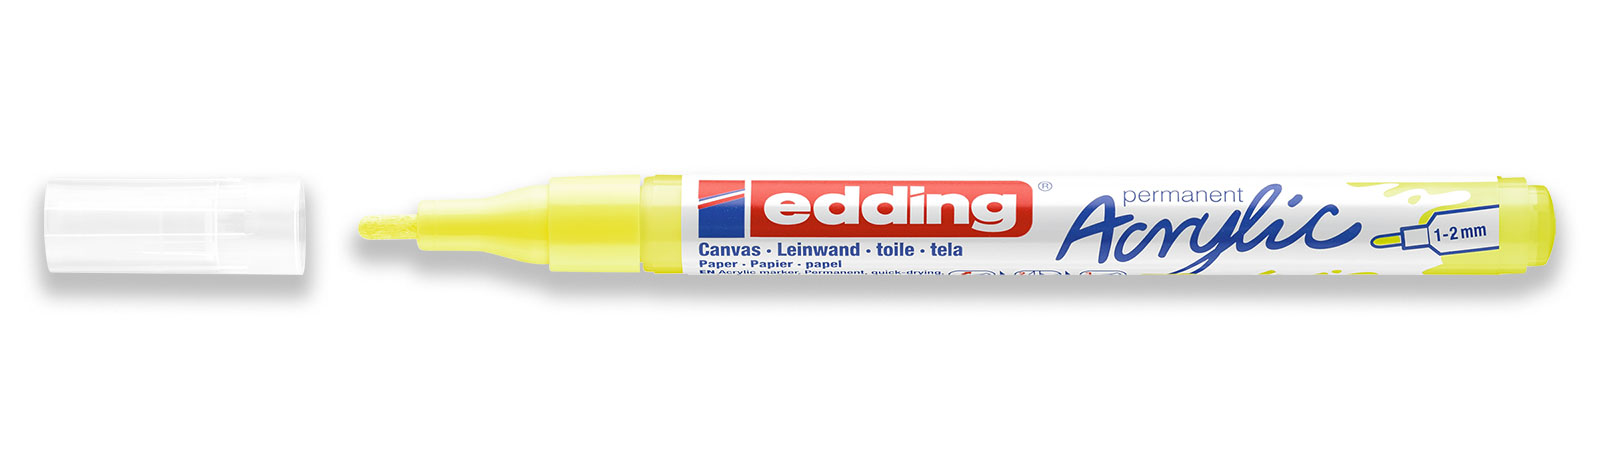 edding 5300 acrylic marker fine in yellow